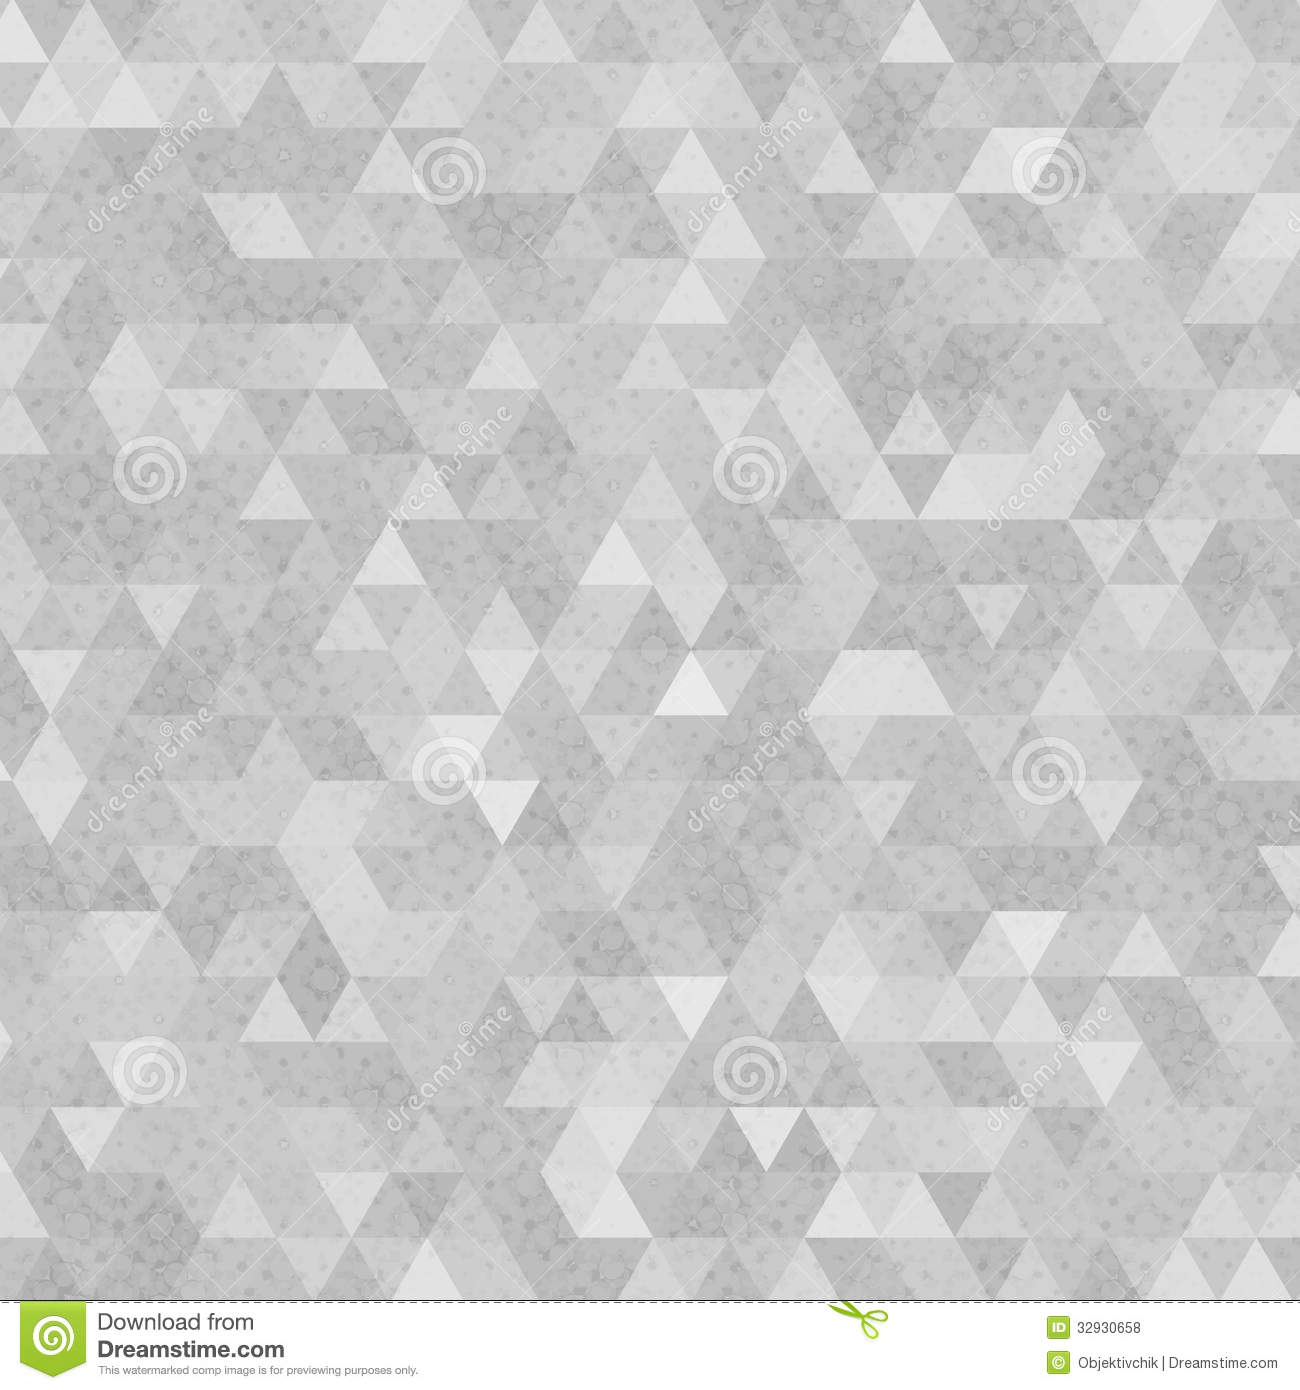 Grey spotty wallpaper